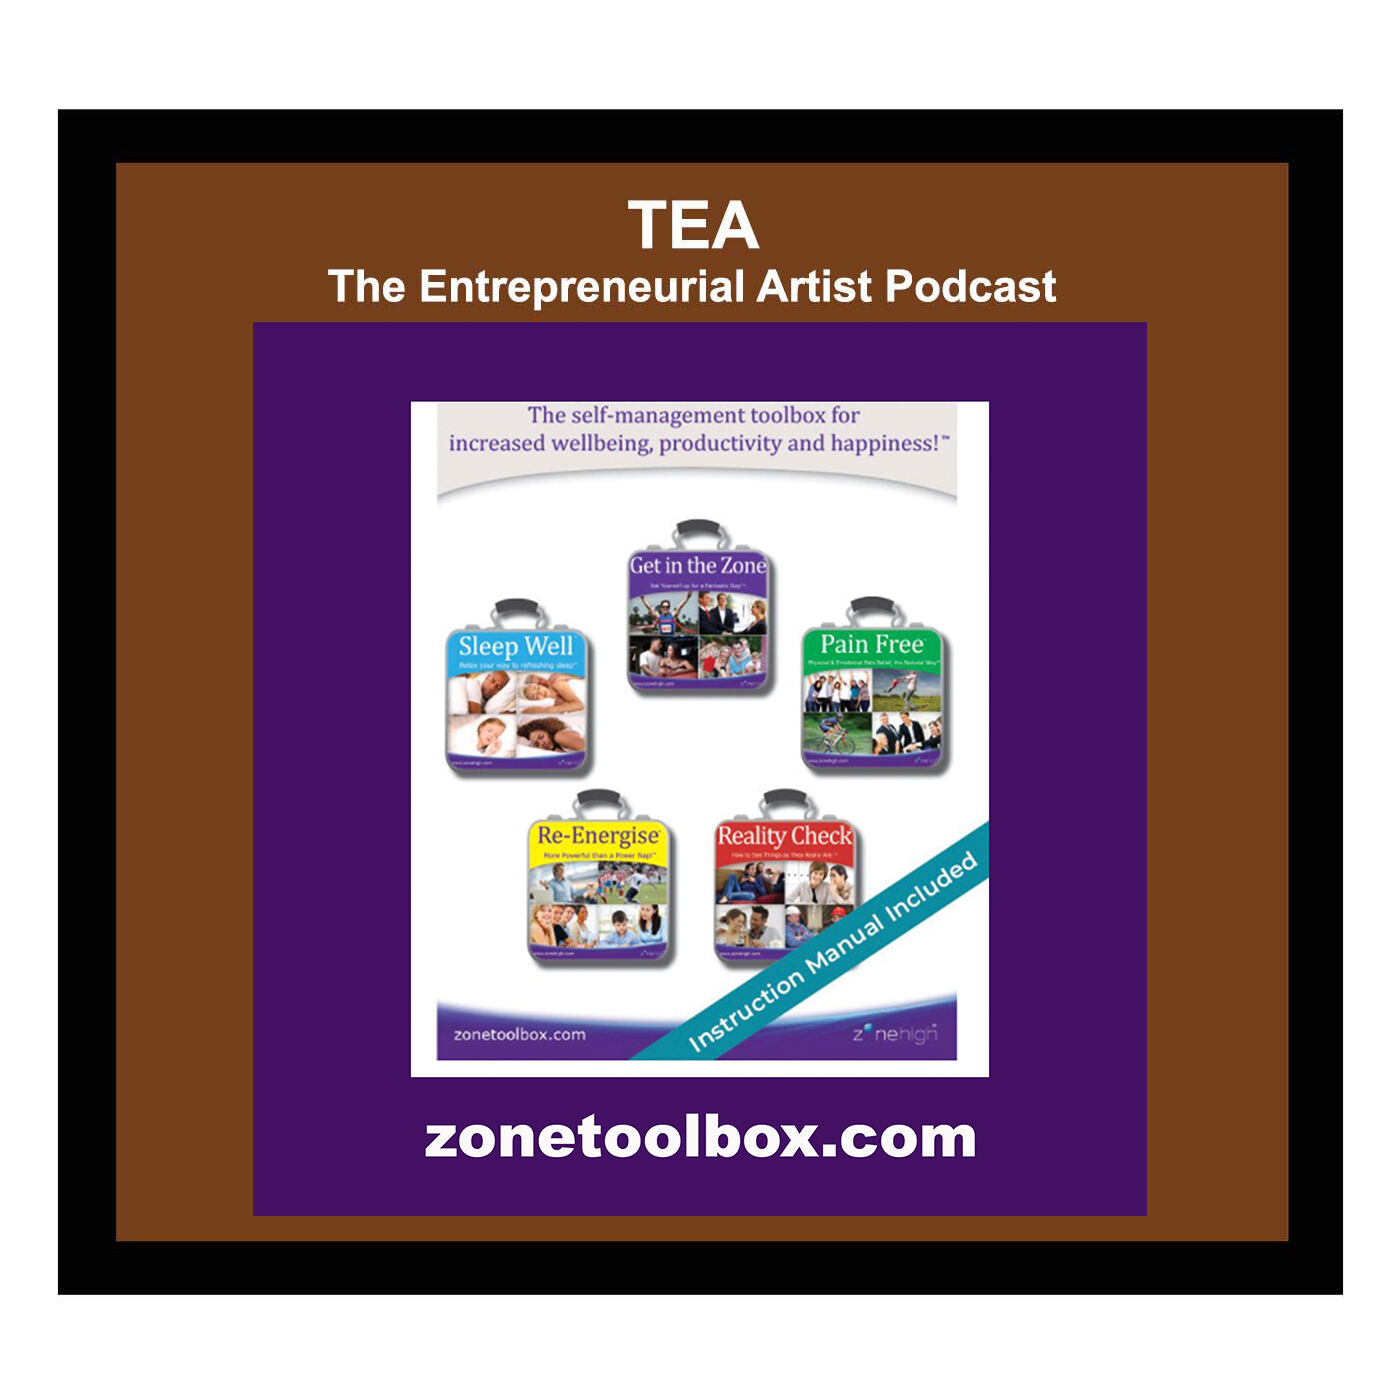 A Day in the Zone - Zone Toolbox